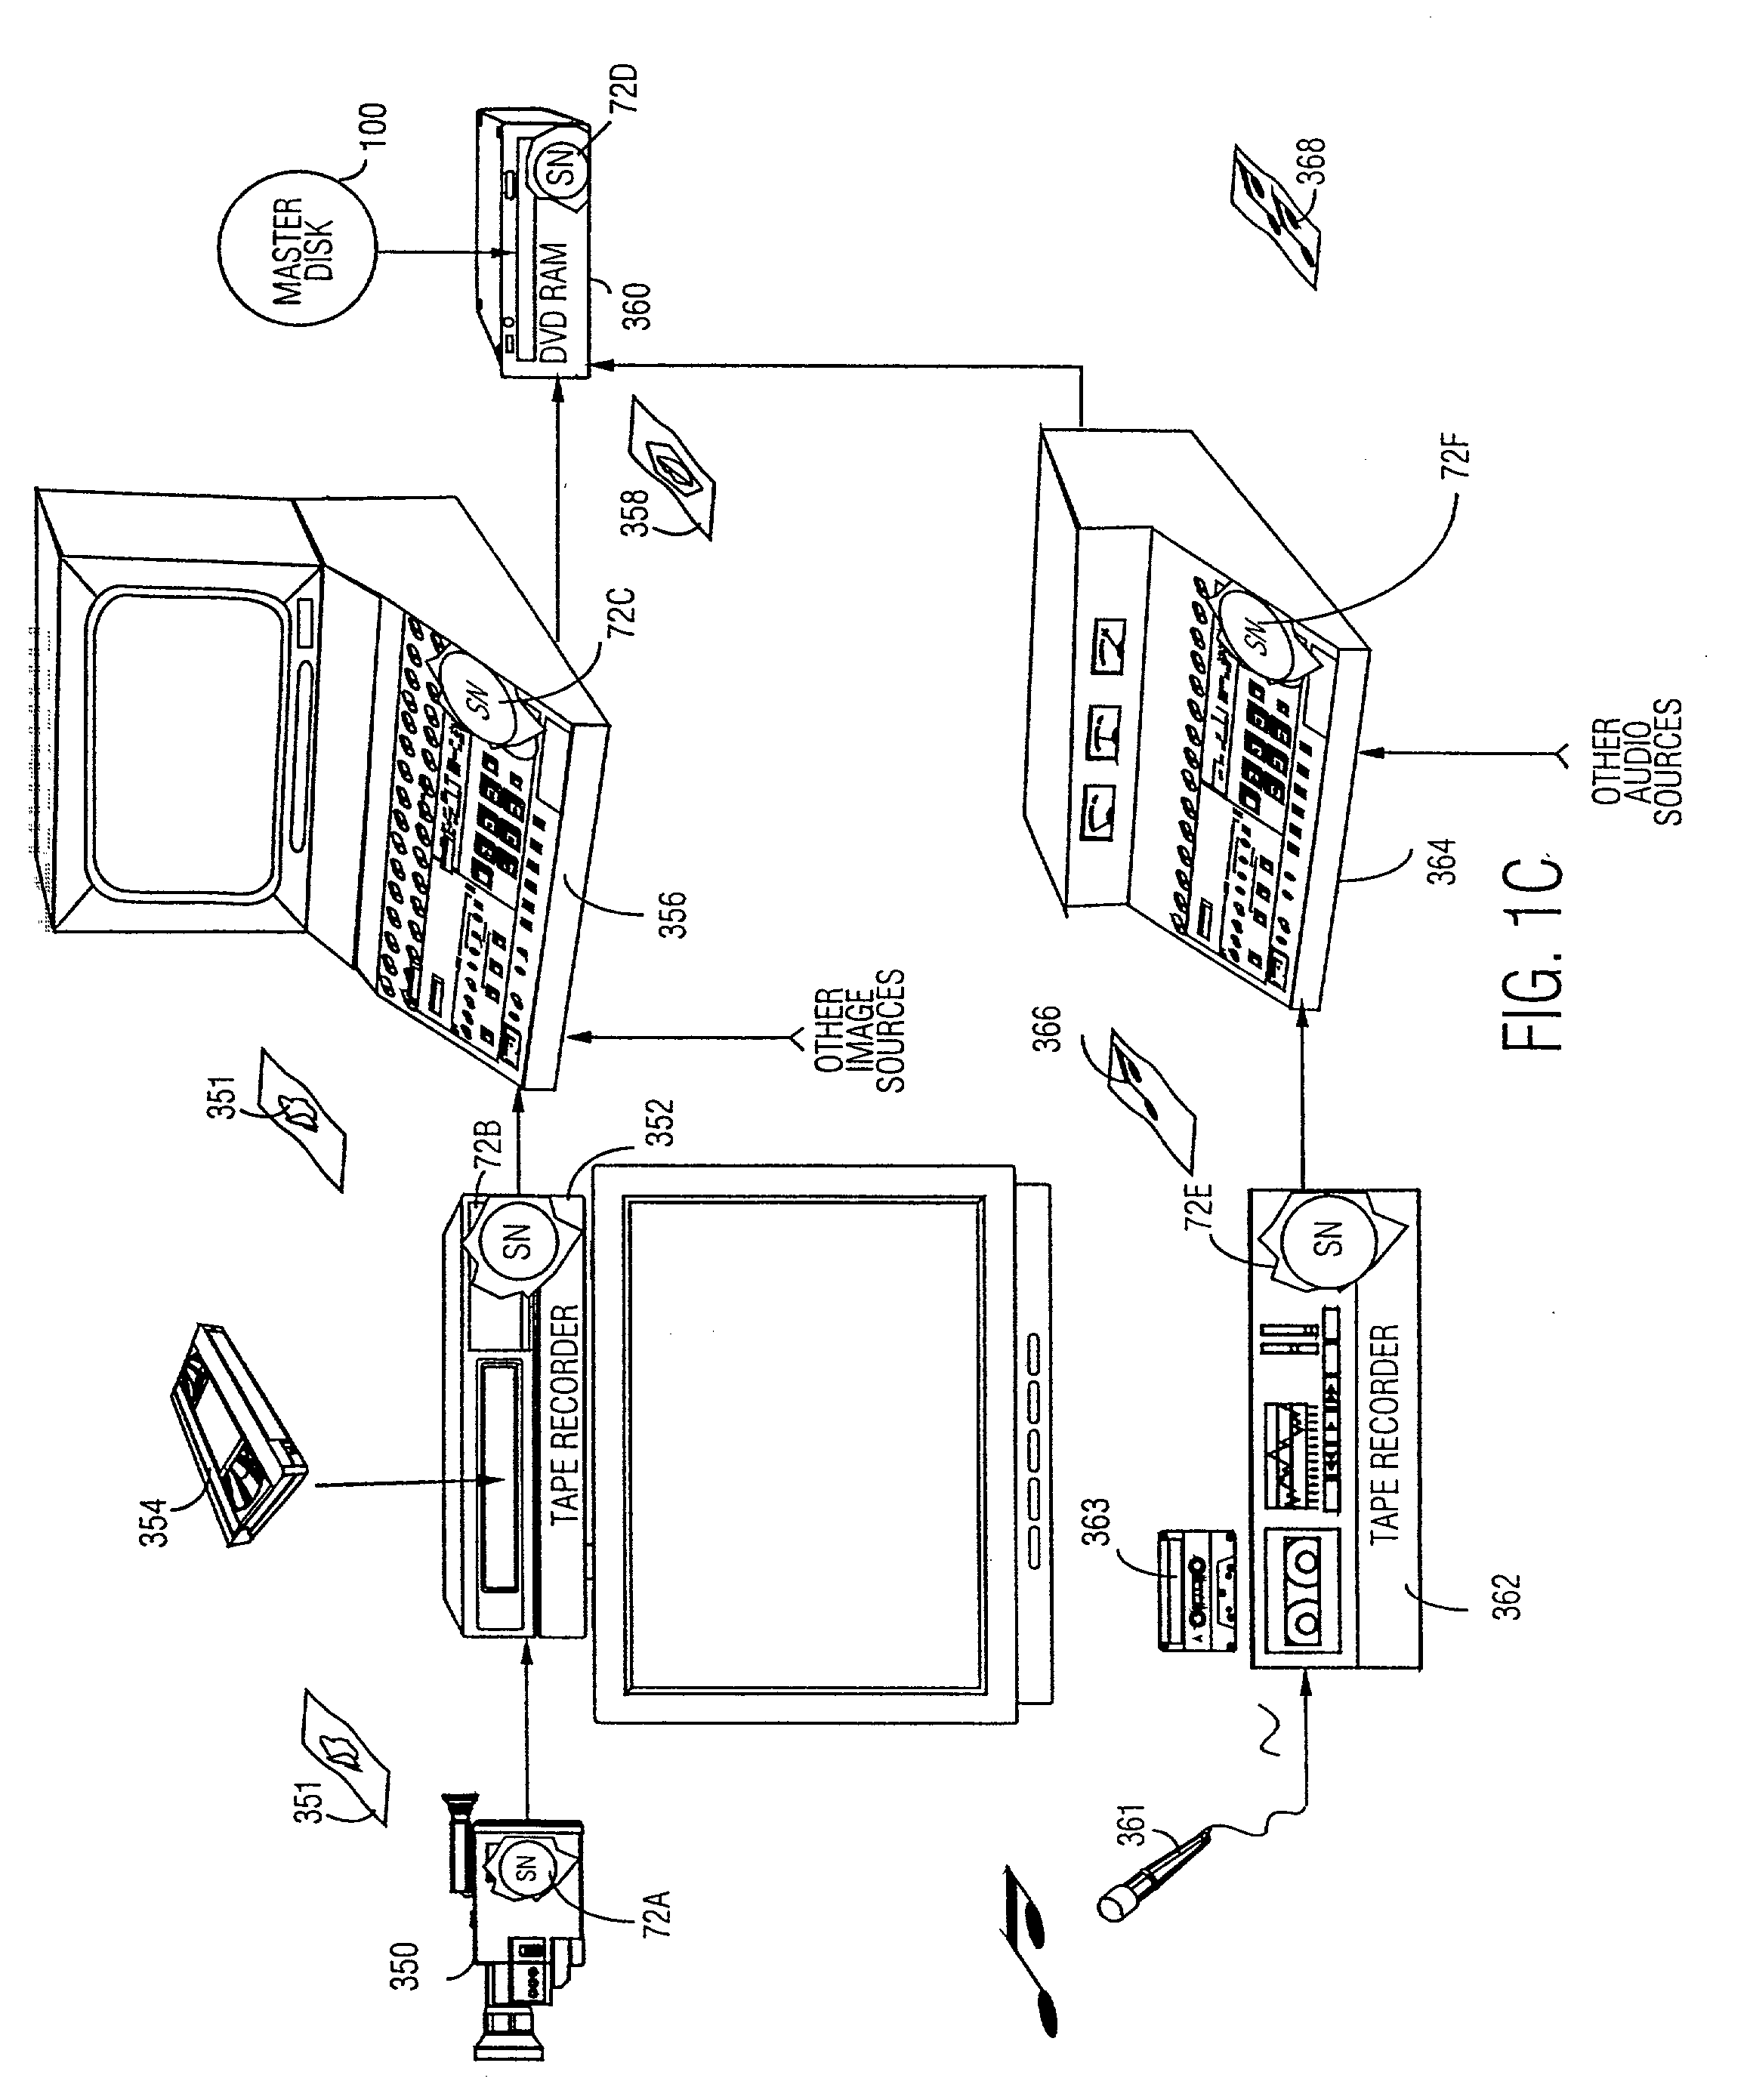 Us20010042043a1 Cryptographic Methods Apparatus And Systems For Fig 2 A Wiring Diagram Of Ward Reverse Jogging Circuit Storage Media Electronic Rights Management In Closed Connected Appliances Google